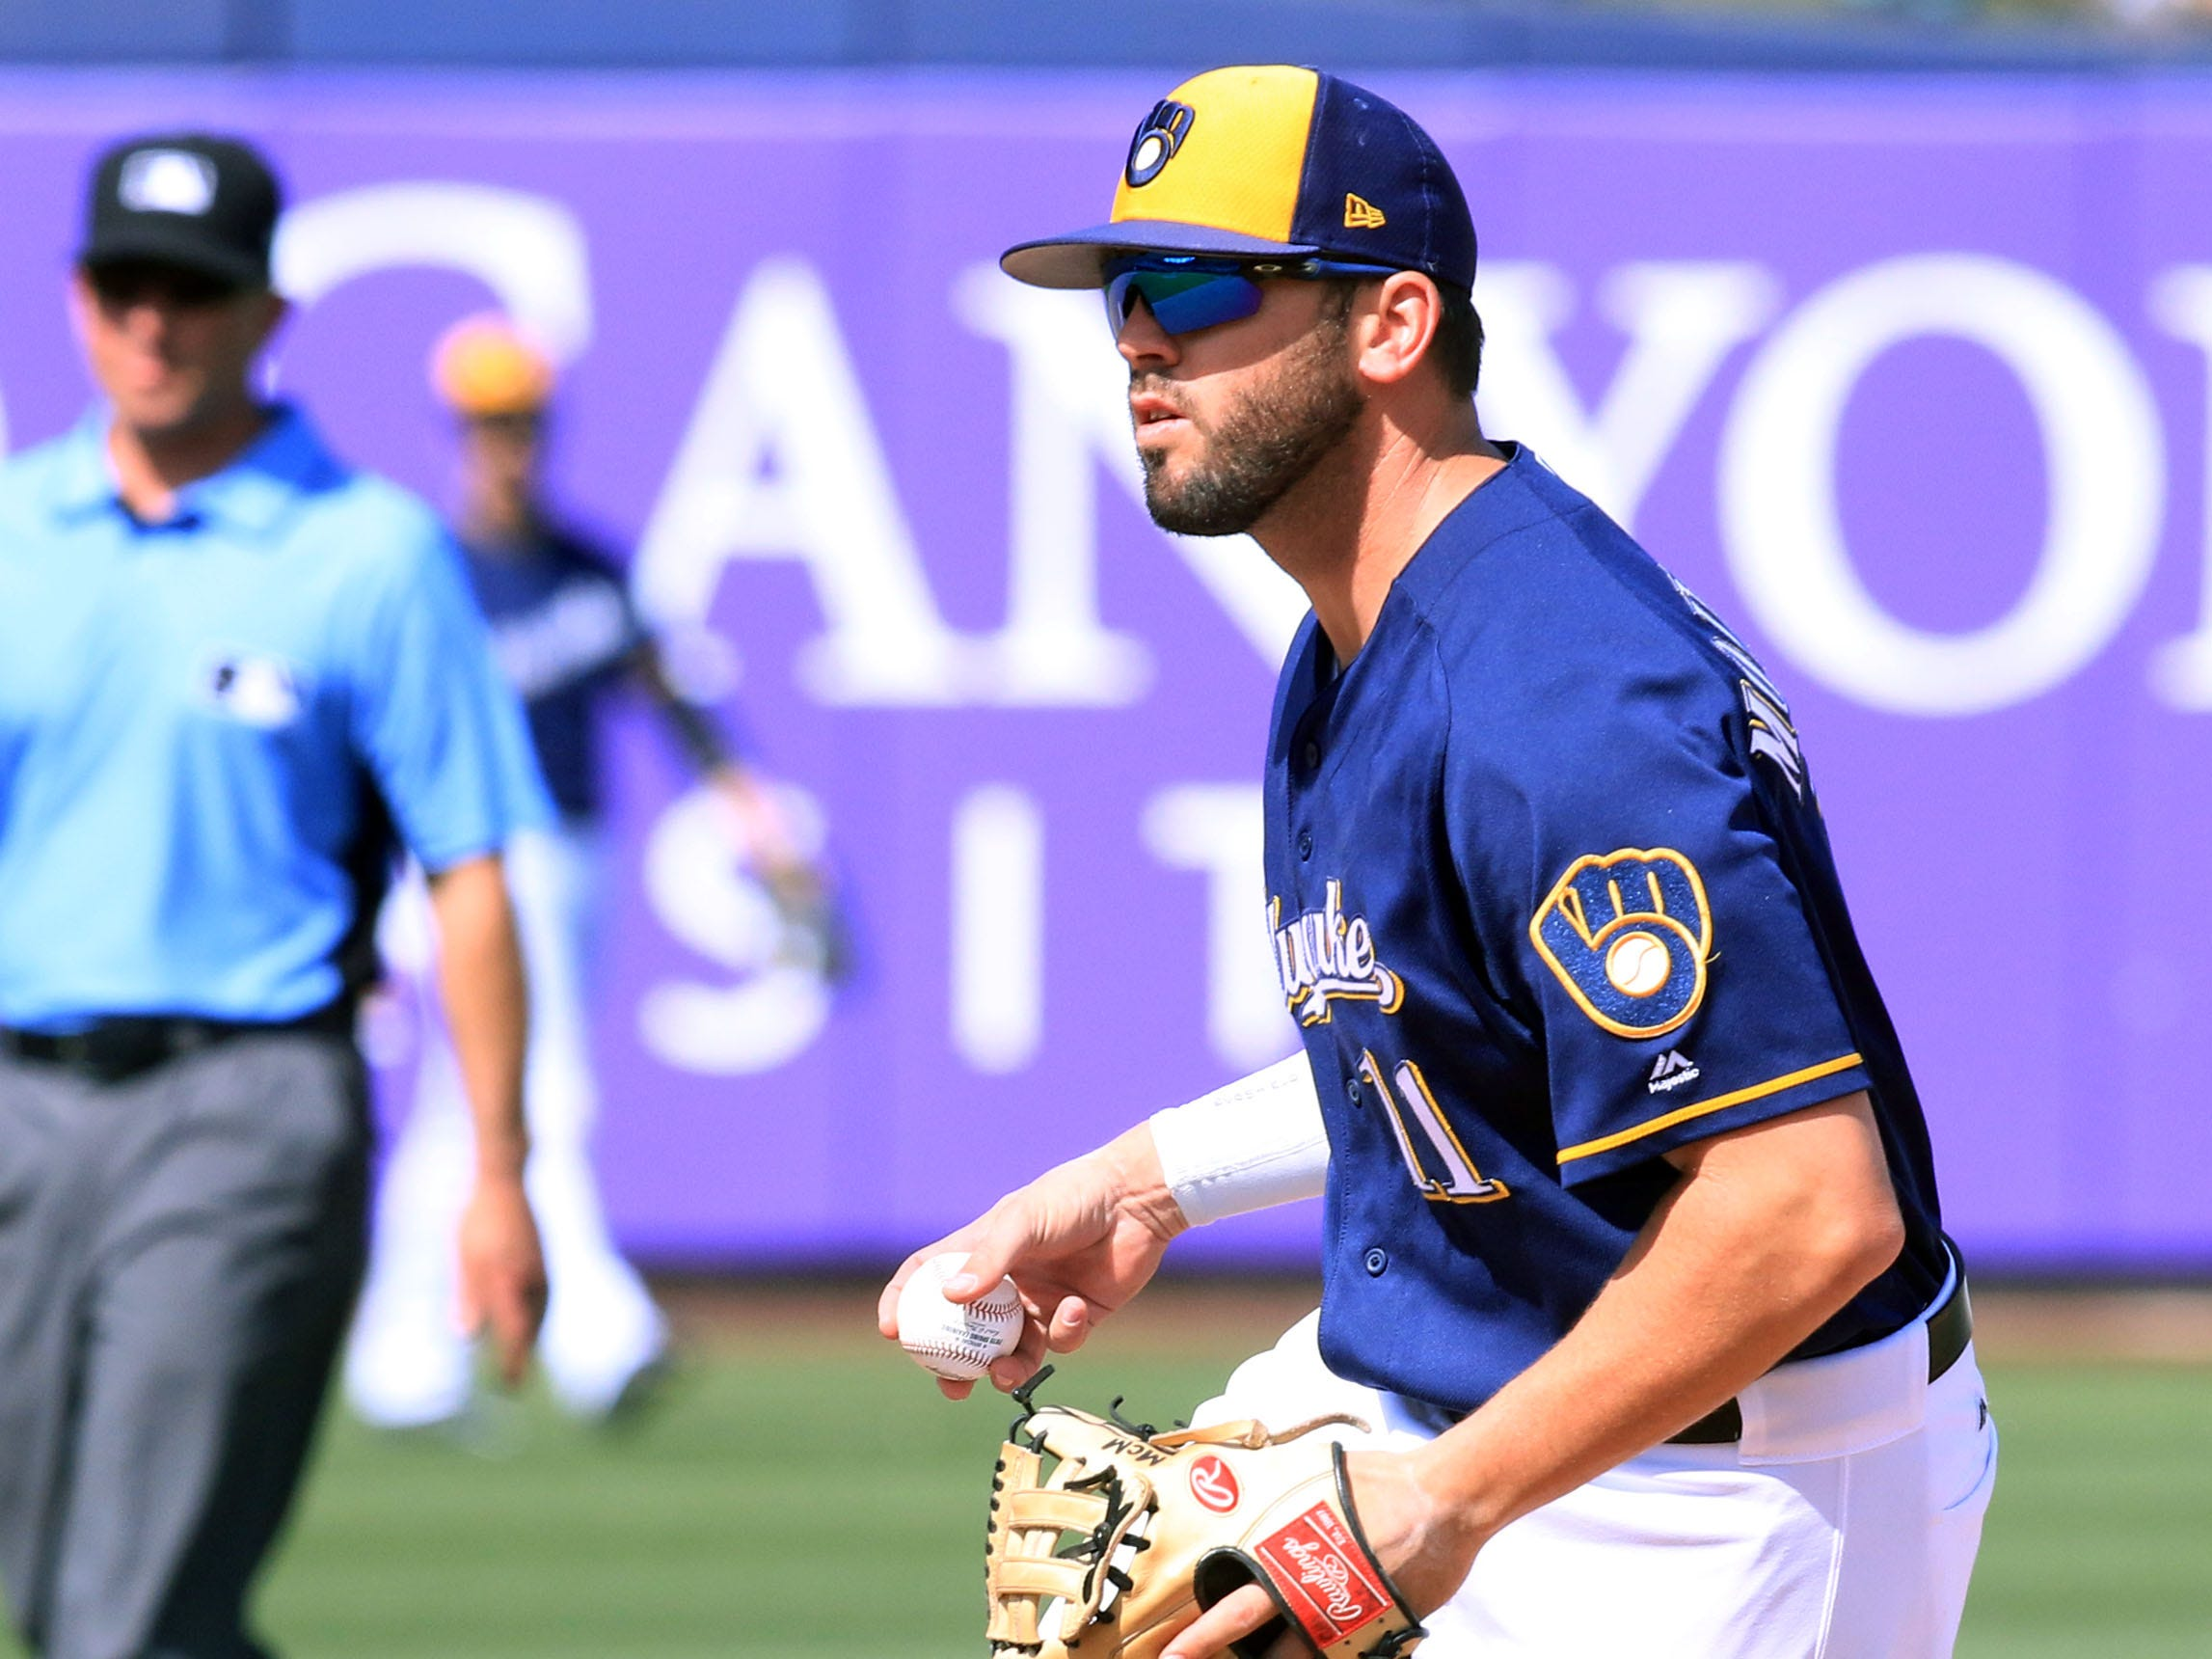 Milwaukee Brewers Mike Moustakas fields a grounder at second base.